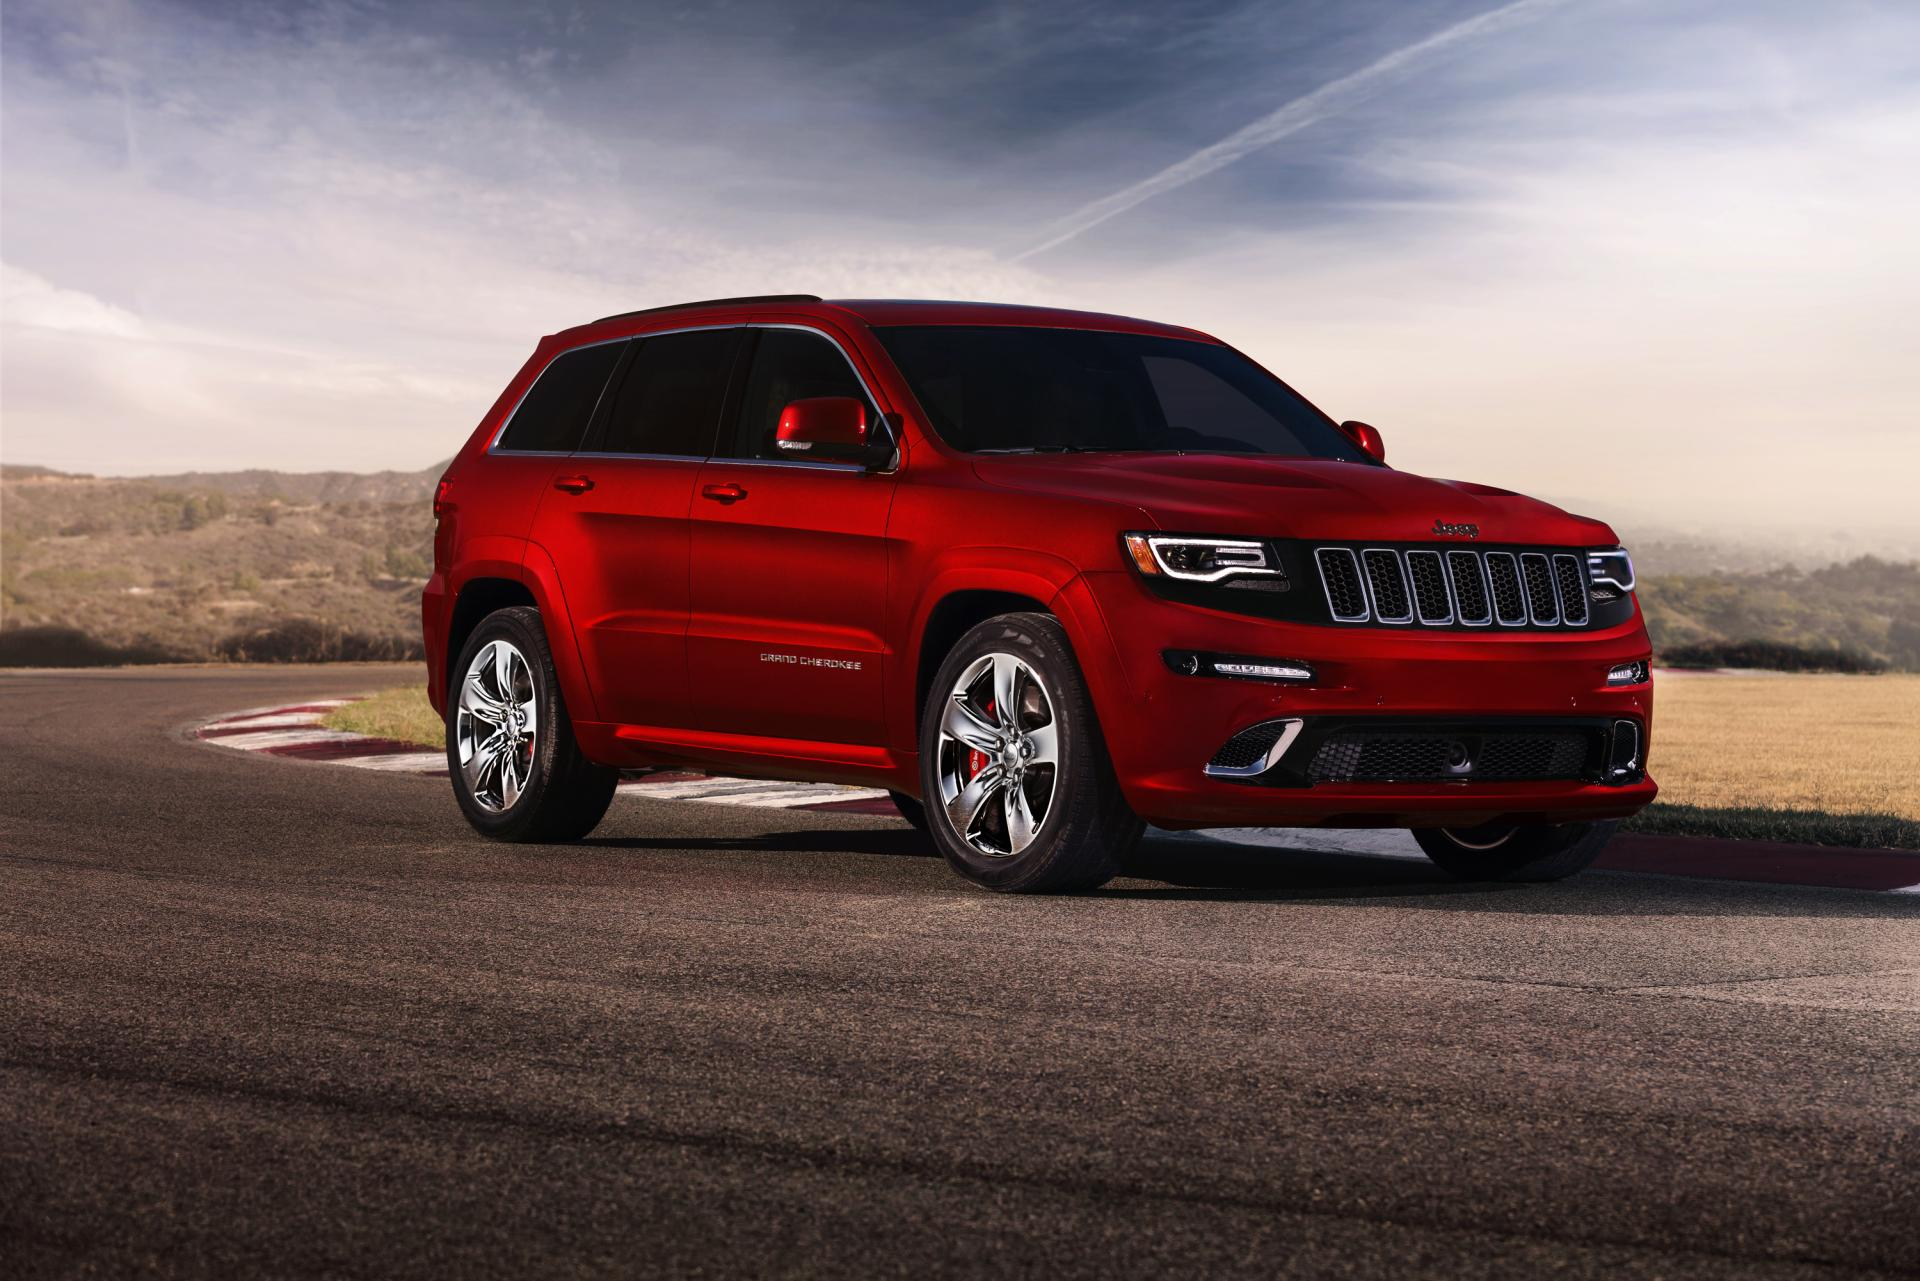 2014 jeep grand cherokee srt news and information. Black Bedroom Furniture Sets. Home Design Ideas